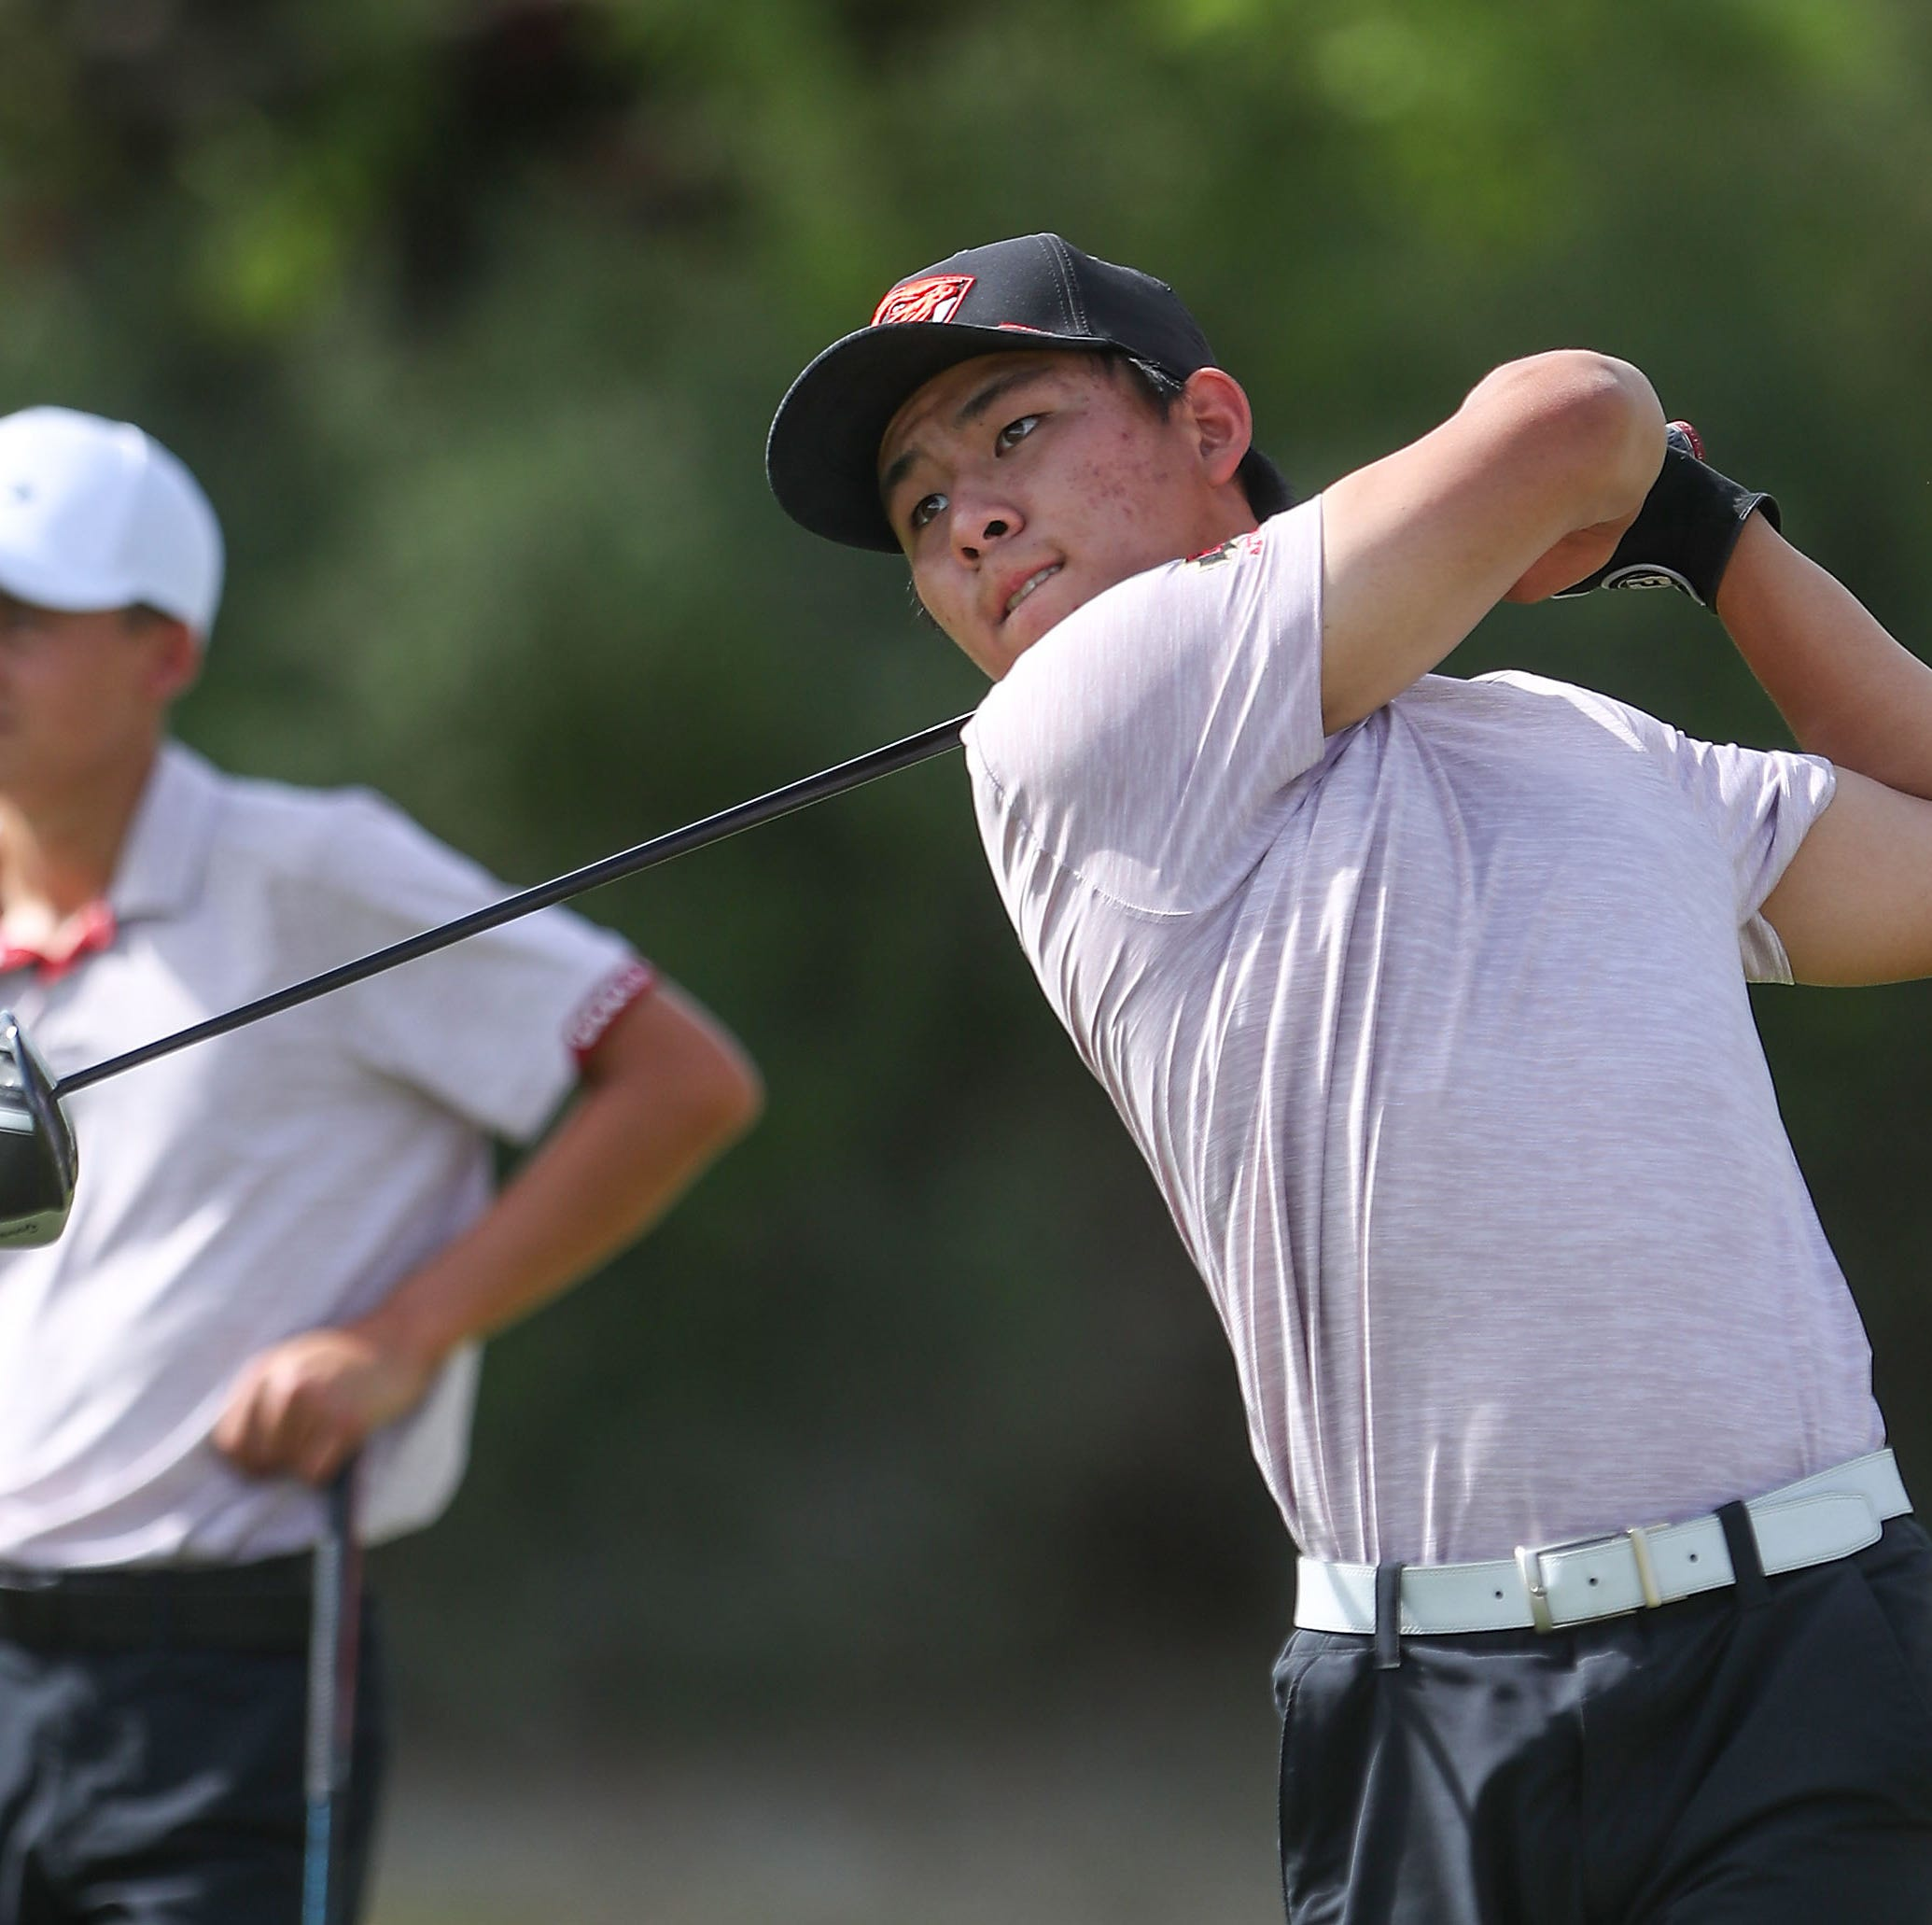 Palm Desert golf stunned at 'disappointing' elimination from CIF team competition